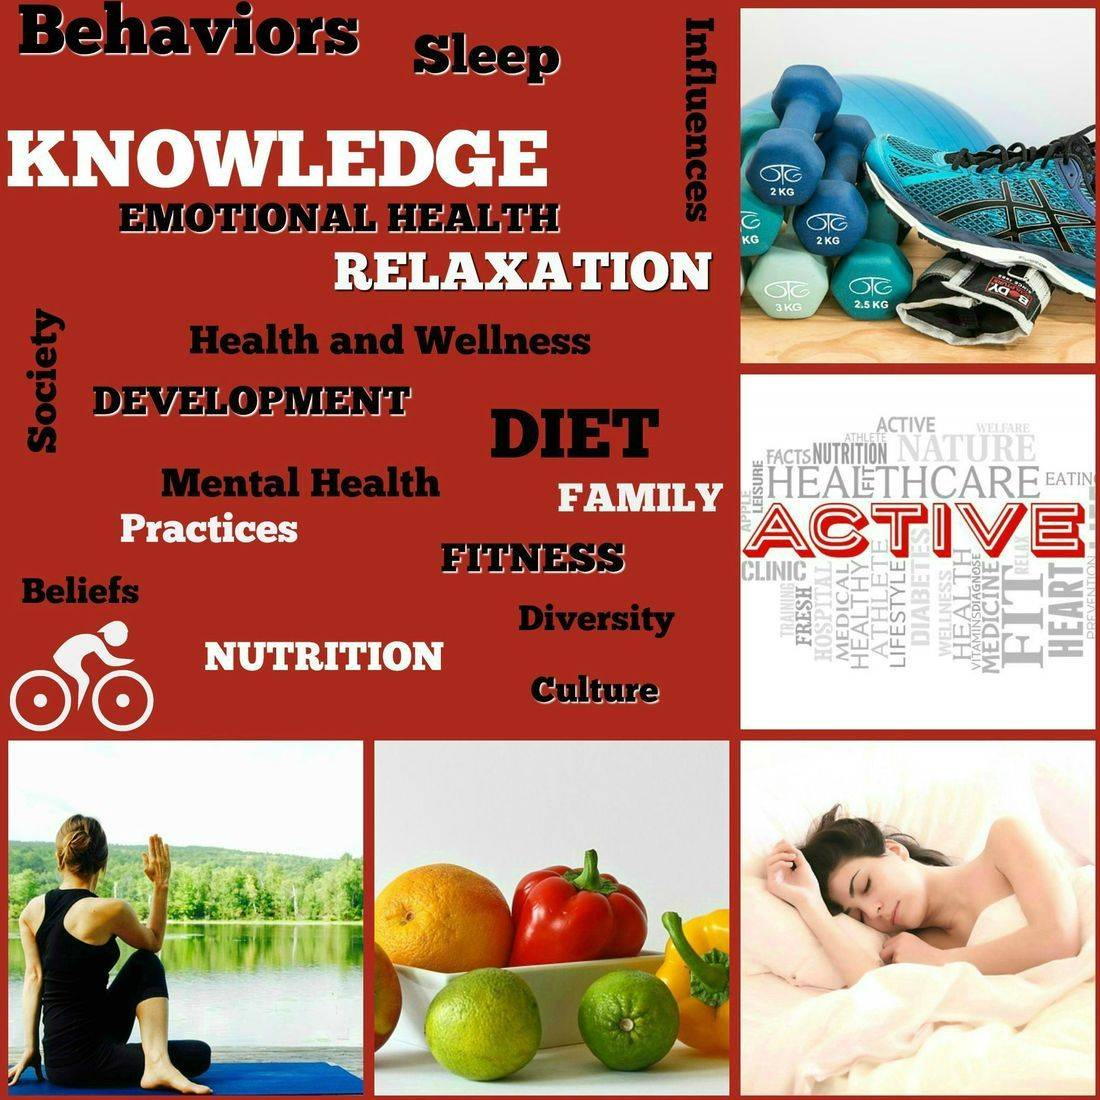 Health, wellness, behaviors, culture, influences, fitness, diet